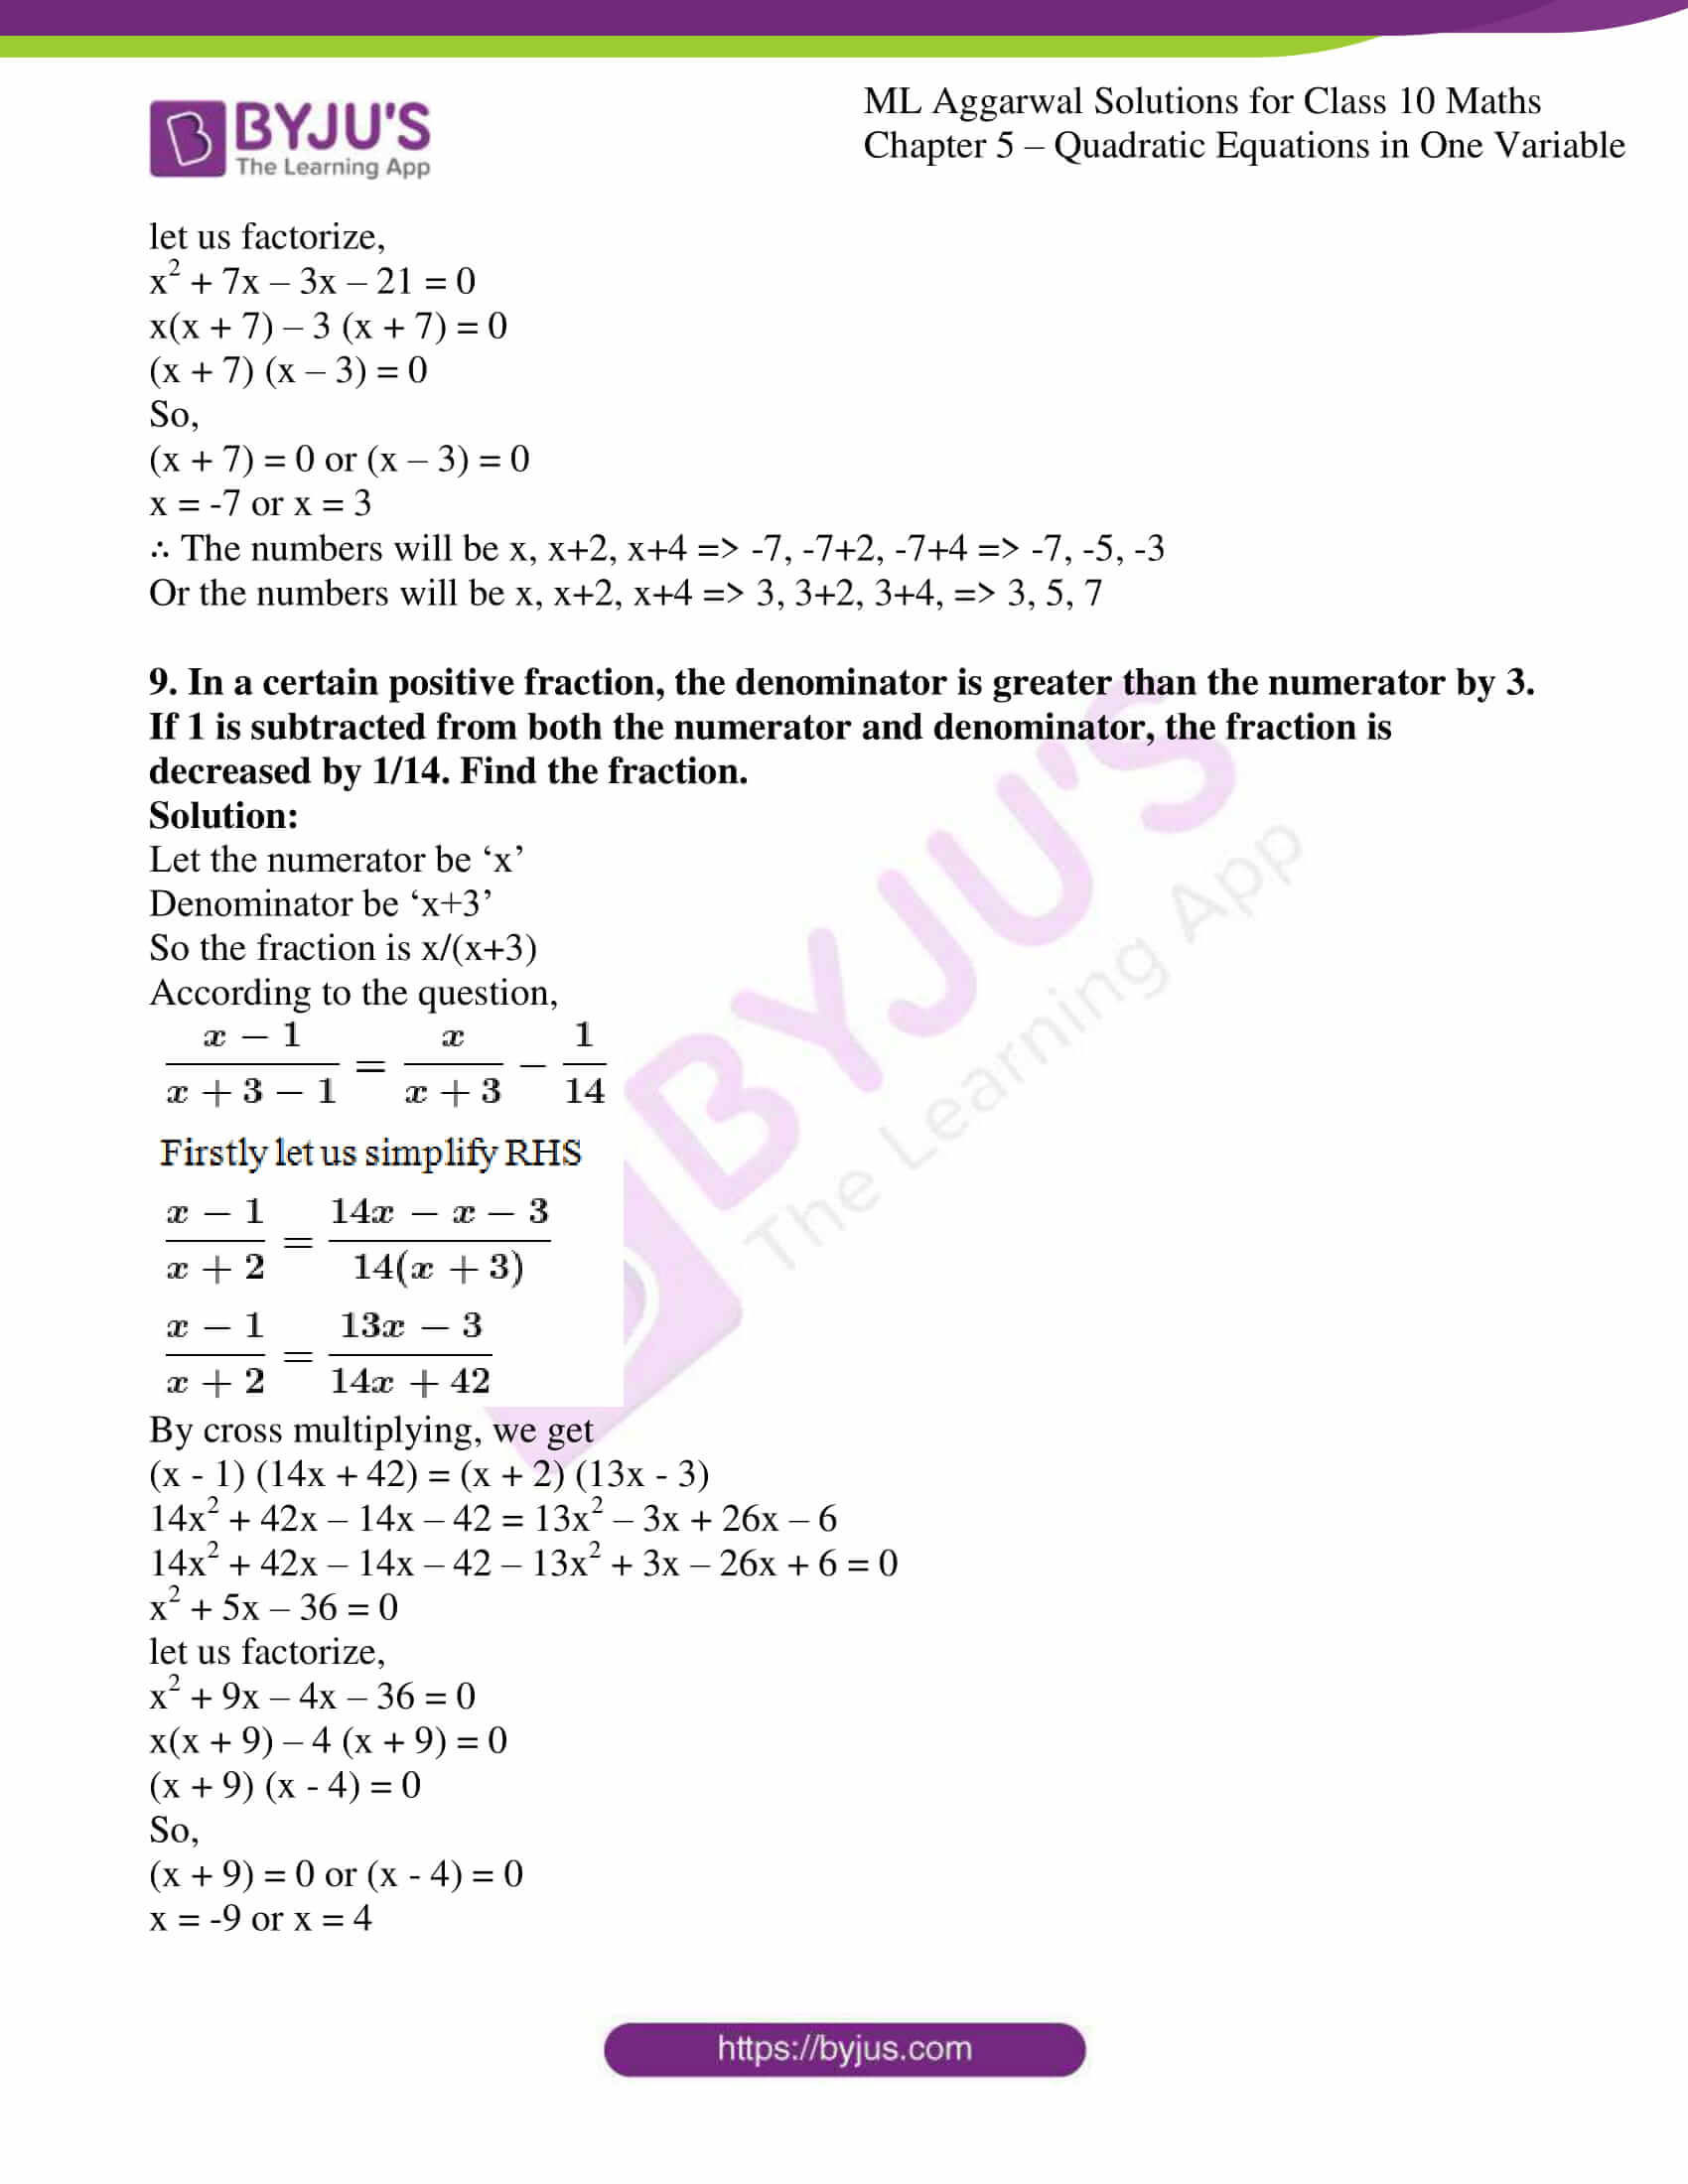 ml aggarwal solutions class 10 maths chapter 5 55